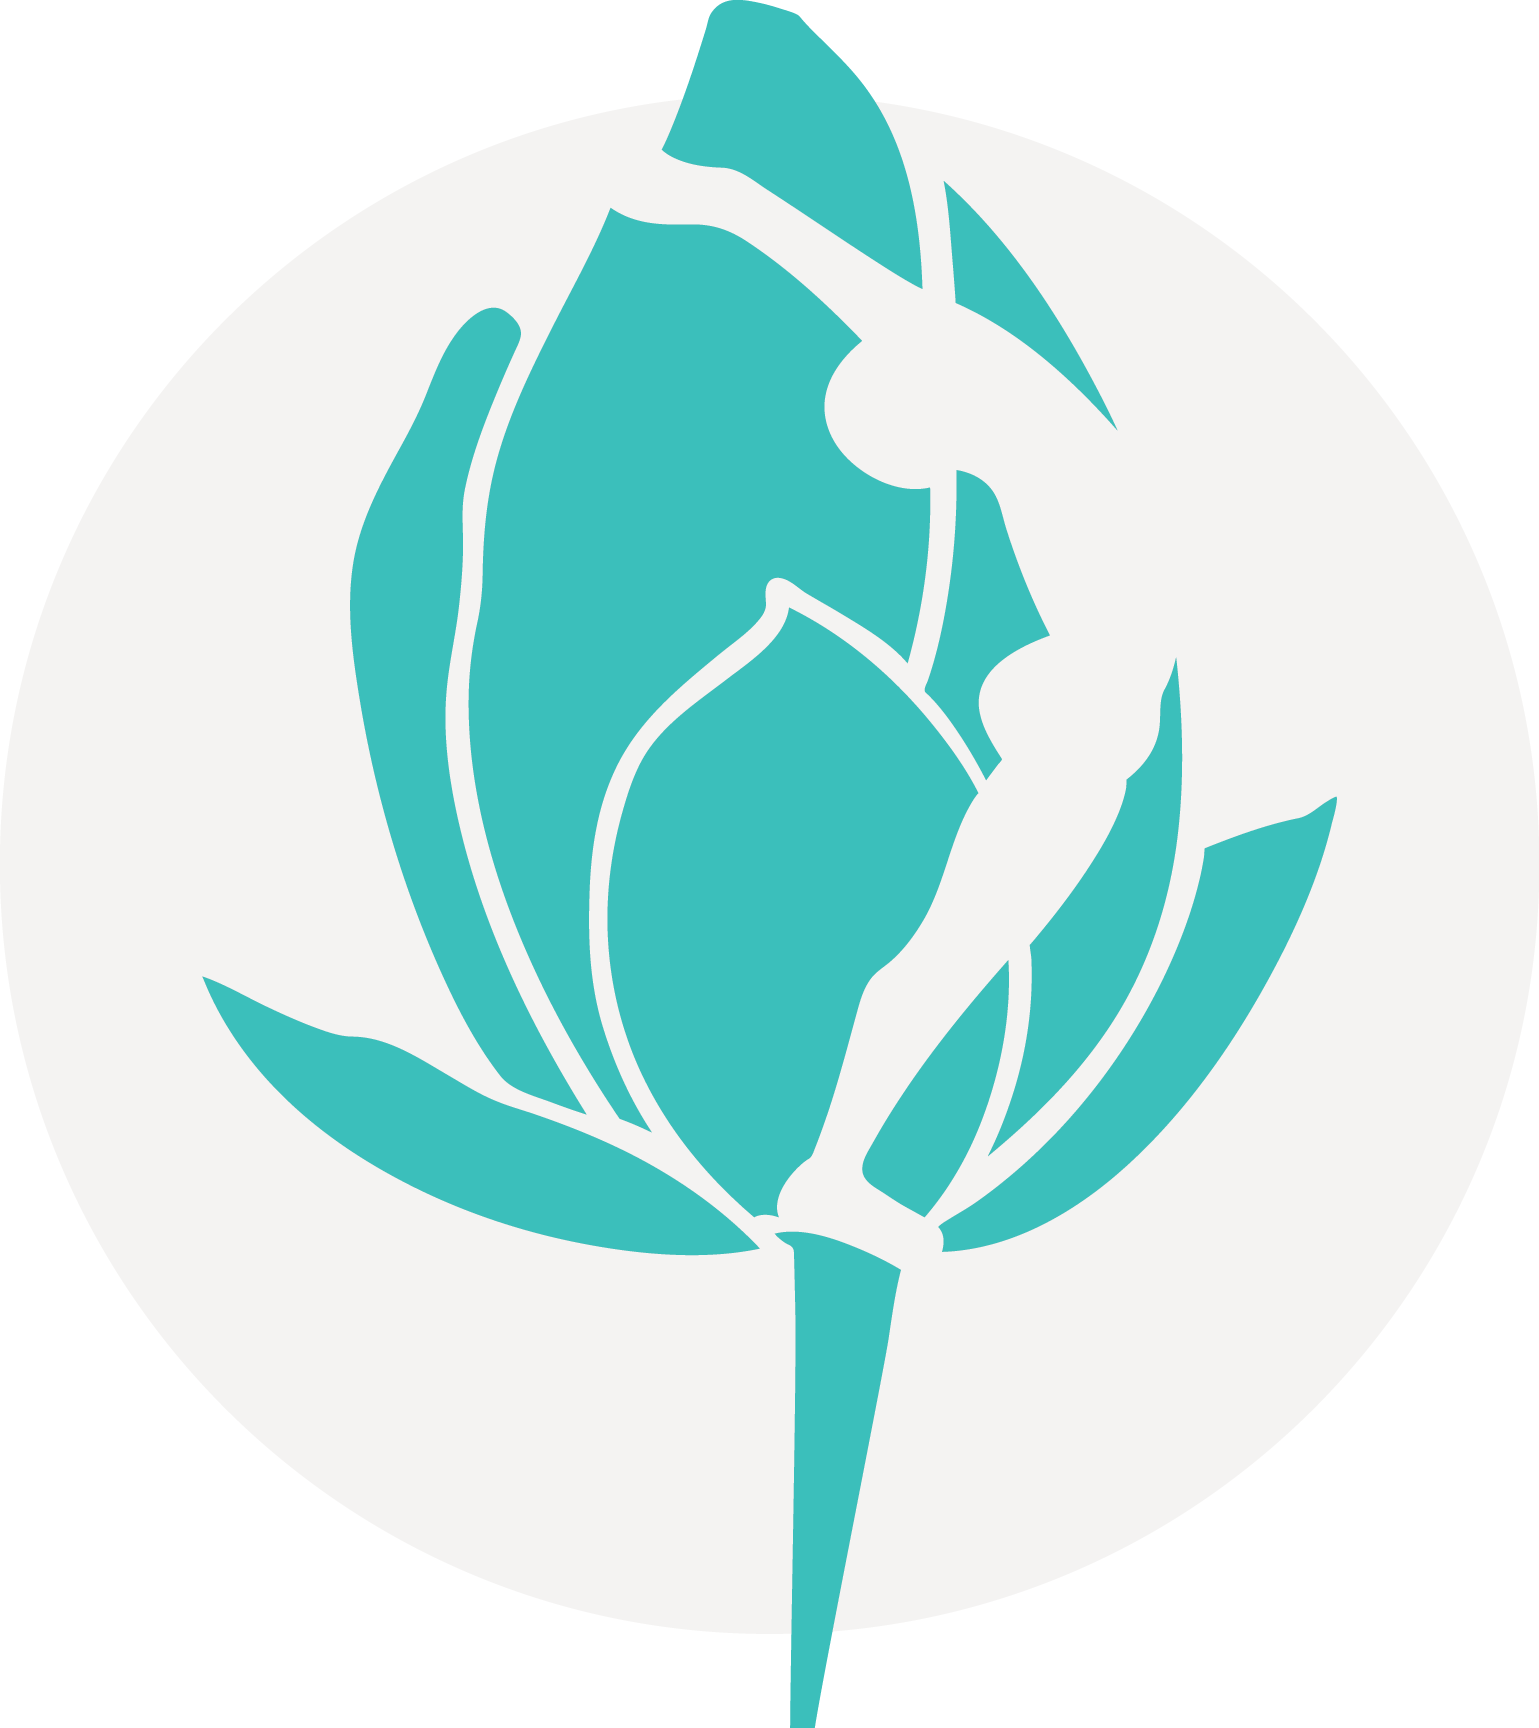 Yoga santosha icon teal